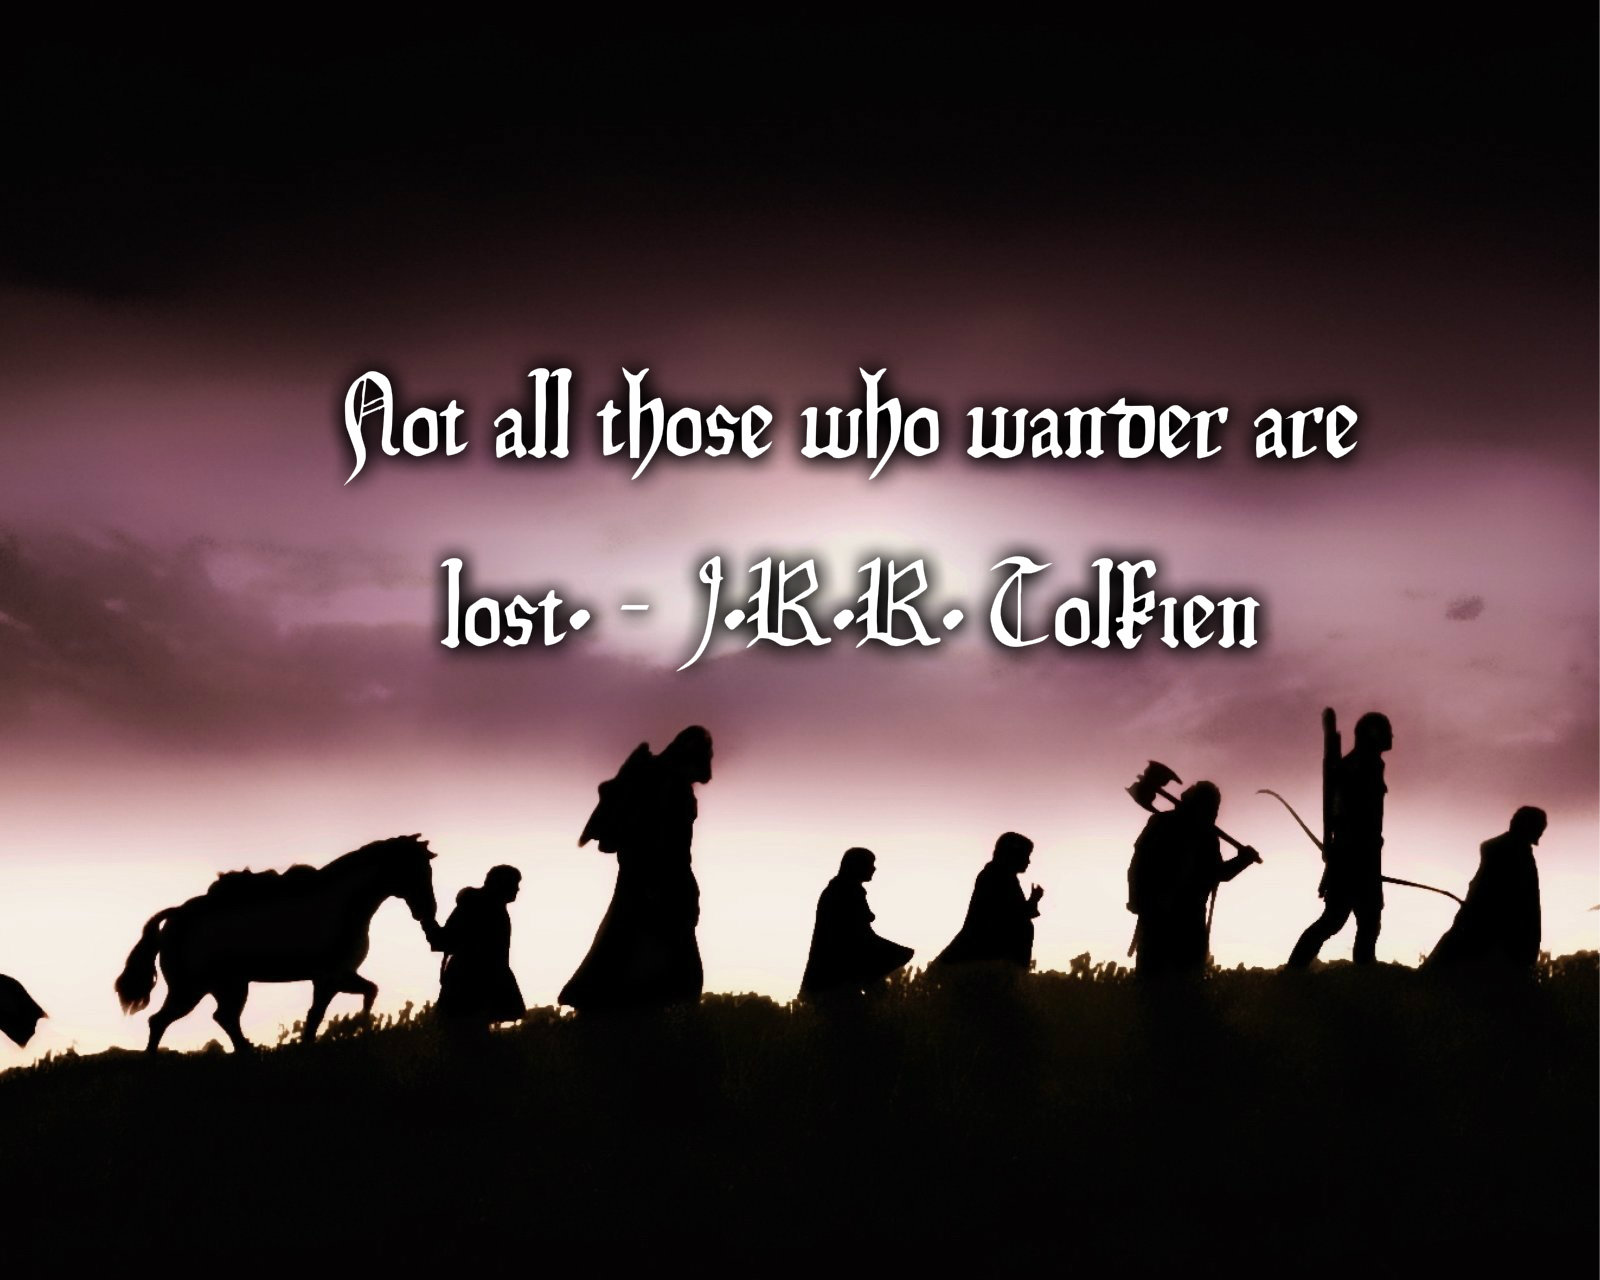 Lord Of The Rings Images Jrr Tolkien Quote Hd Wallpaper And